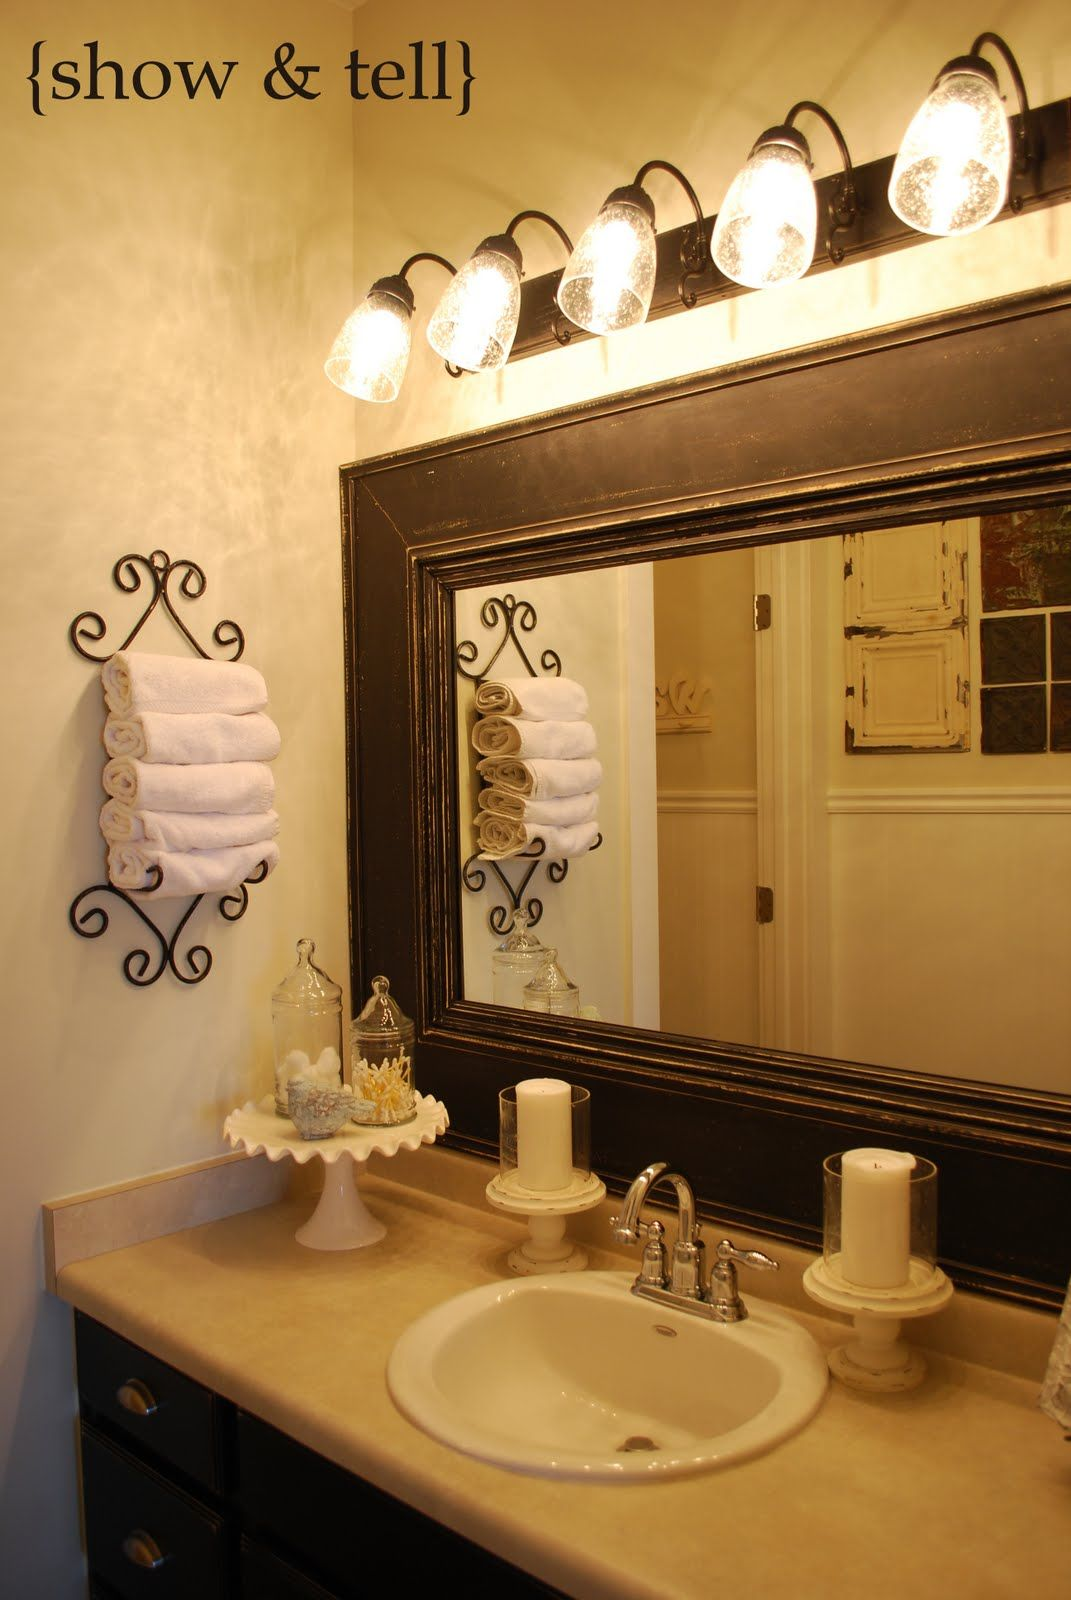 cake stand for holding things like soap and towel - cute idea, powder room